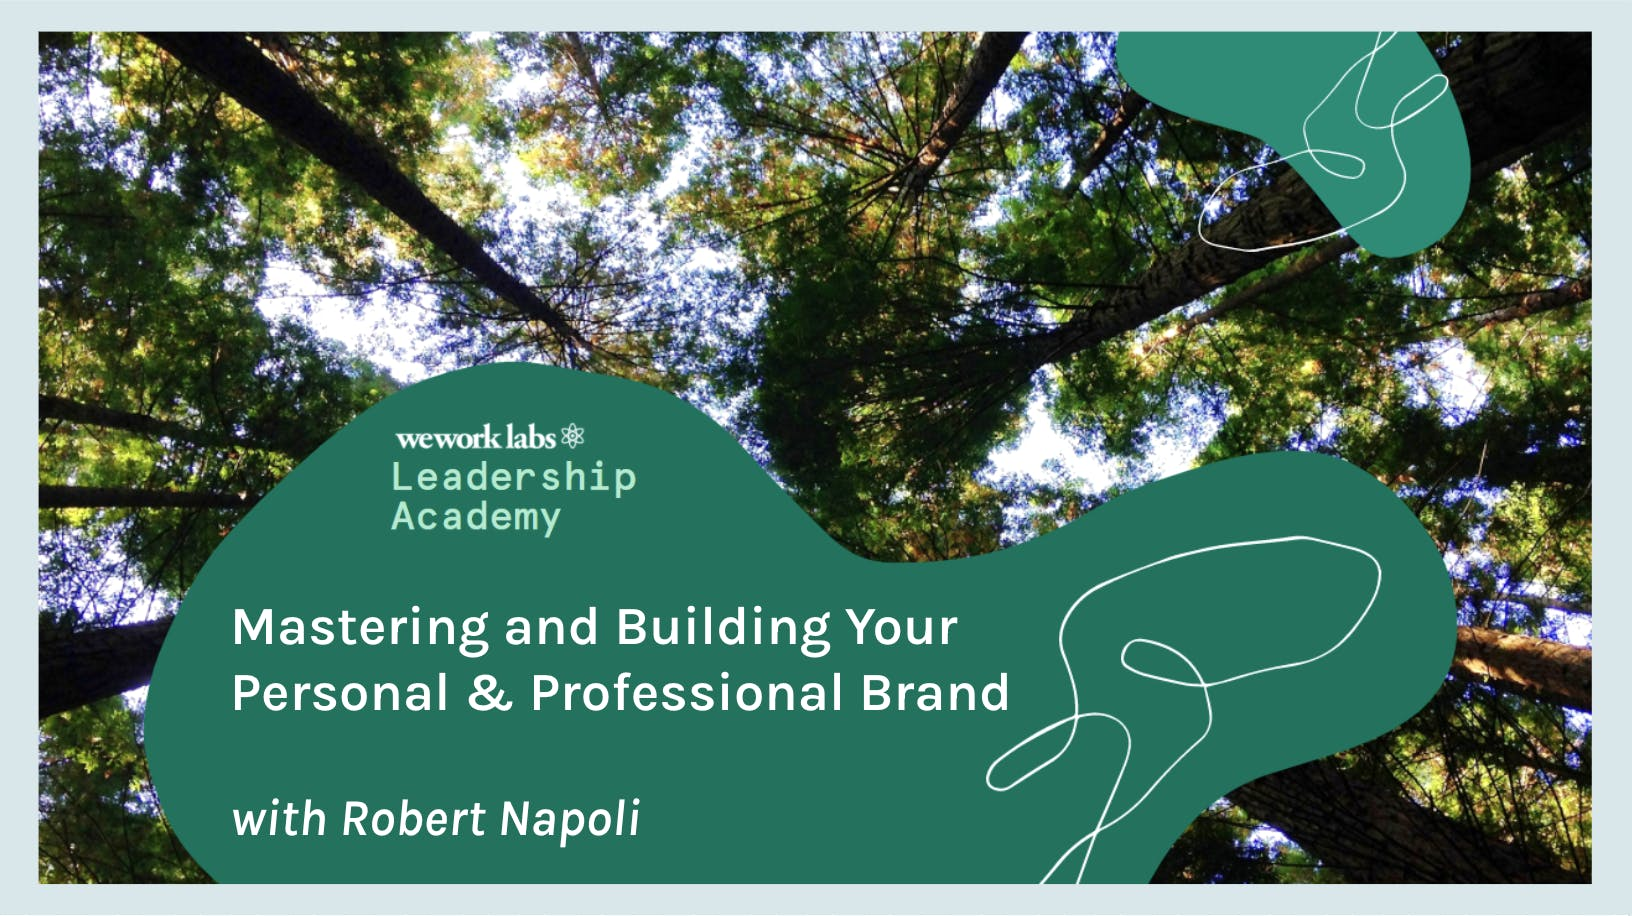 Leadership Academy: Mastering & Building Your Personal & Professional Brand